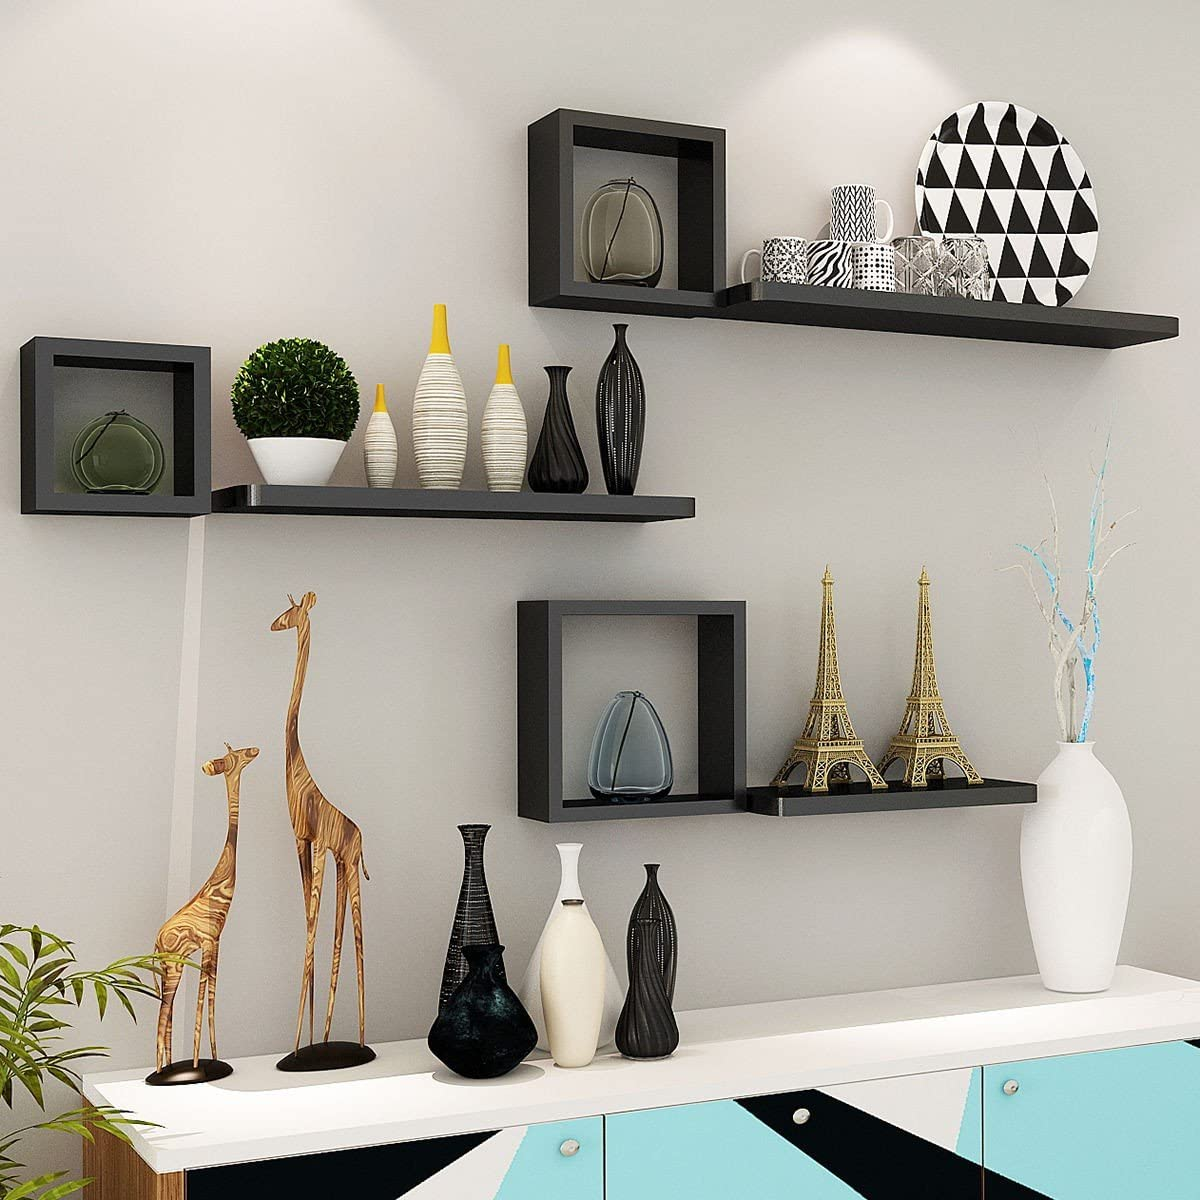 Floating Wall Mounted Shelves Set Of 6 Home Great For Kitchen, Dining Room, Living Room Or Office Which Will Save Storage And Decorate Modern